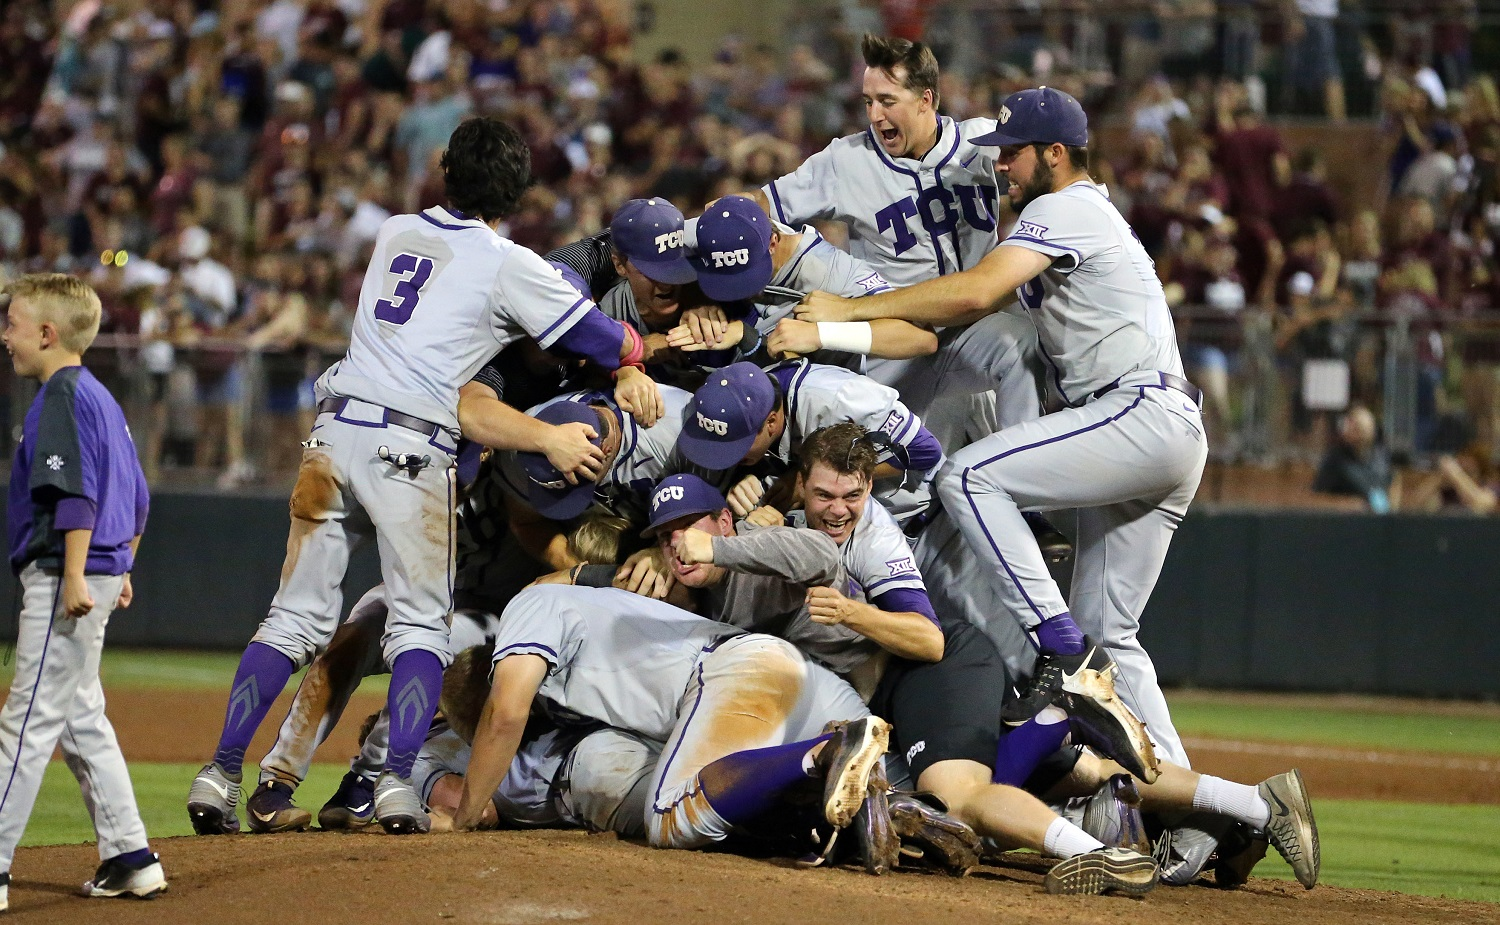 Members of the TCU baseball team dog pile on the pitchers mound after beating Texas A&M 4-1 in a NCAA college baseball Super Regional tournament game, Sunday, June 12, 2016, in College Station, Texas. (AP Photo/Sam Craft)